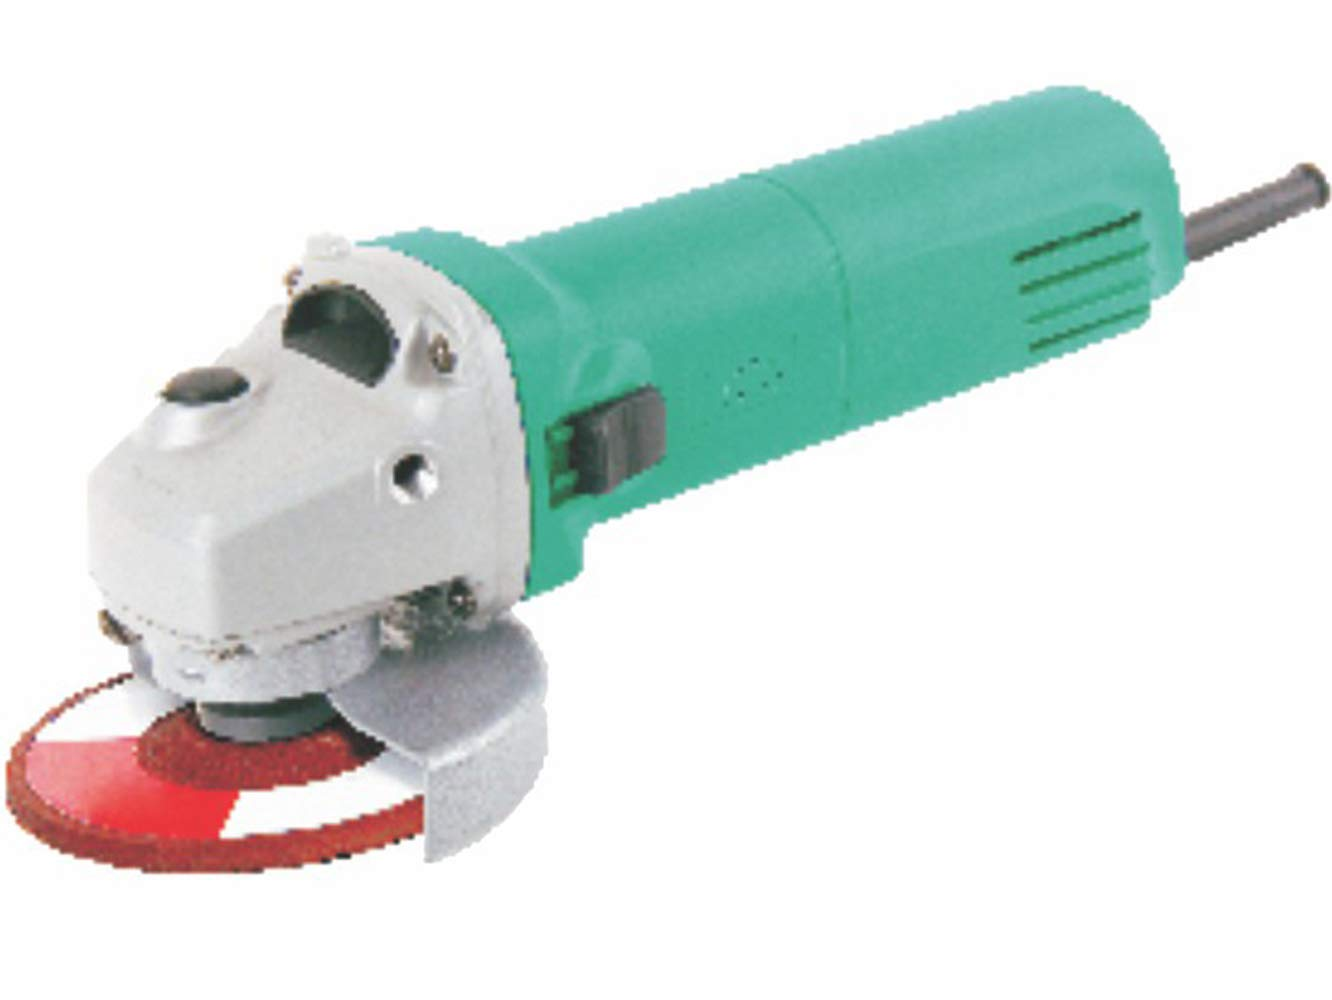 POWERTEX SD506 Steel Wood Angle Grinder machine